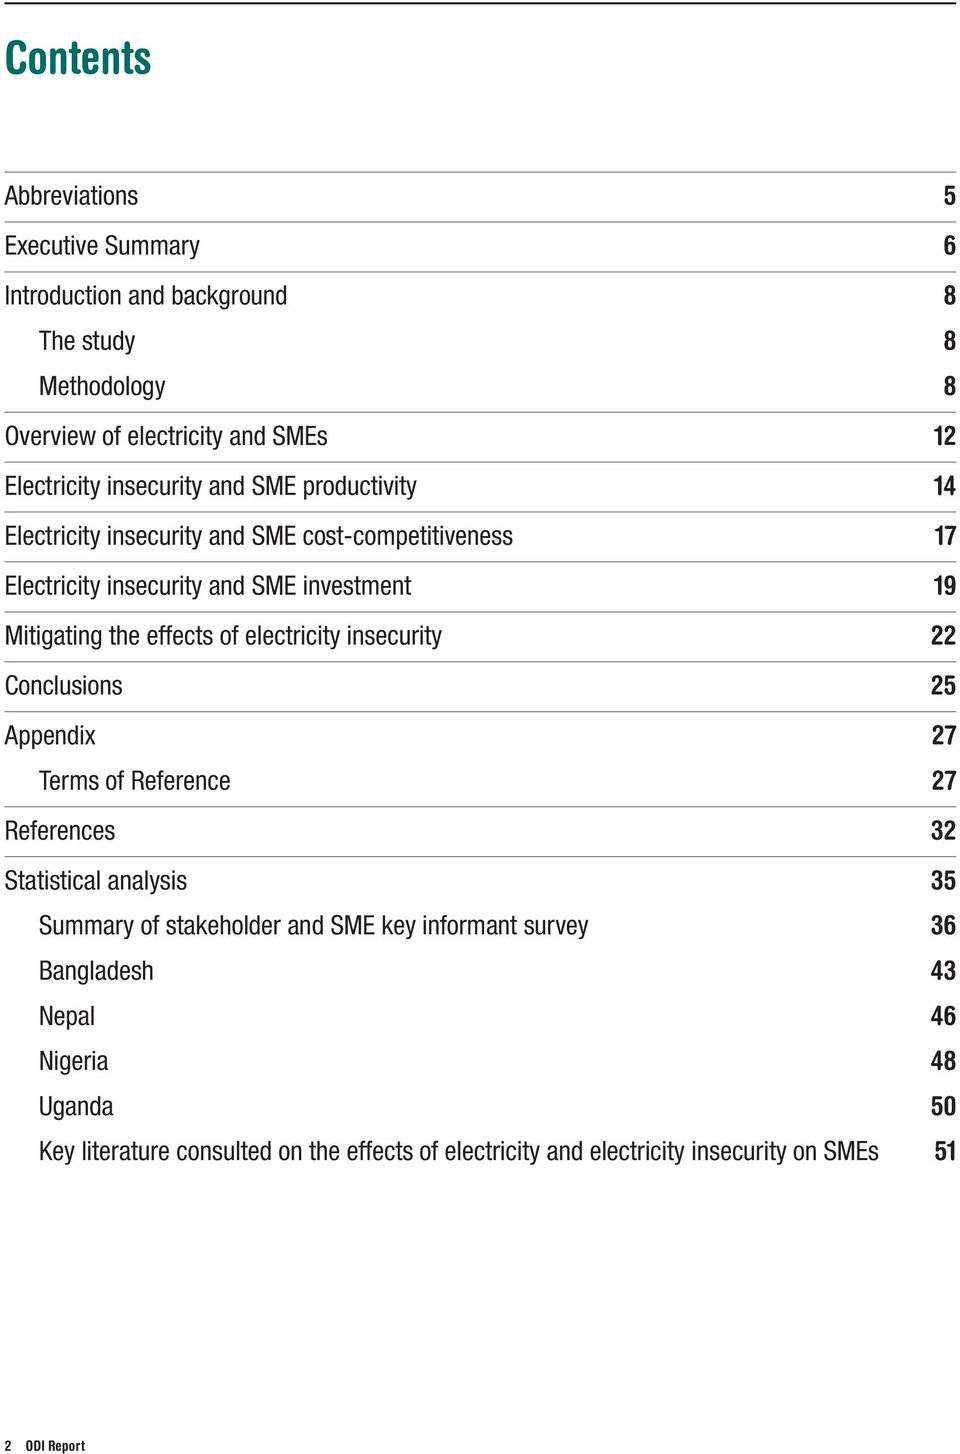 effects of electricity insecurity 22 Conclusions 25 Appendix 27 Terms of Reference 27 References 32 Statistical analysis 35 Summary of stakeholder and SME